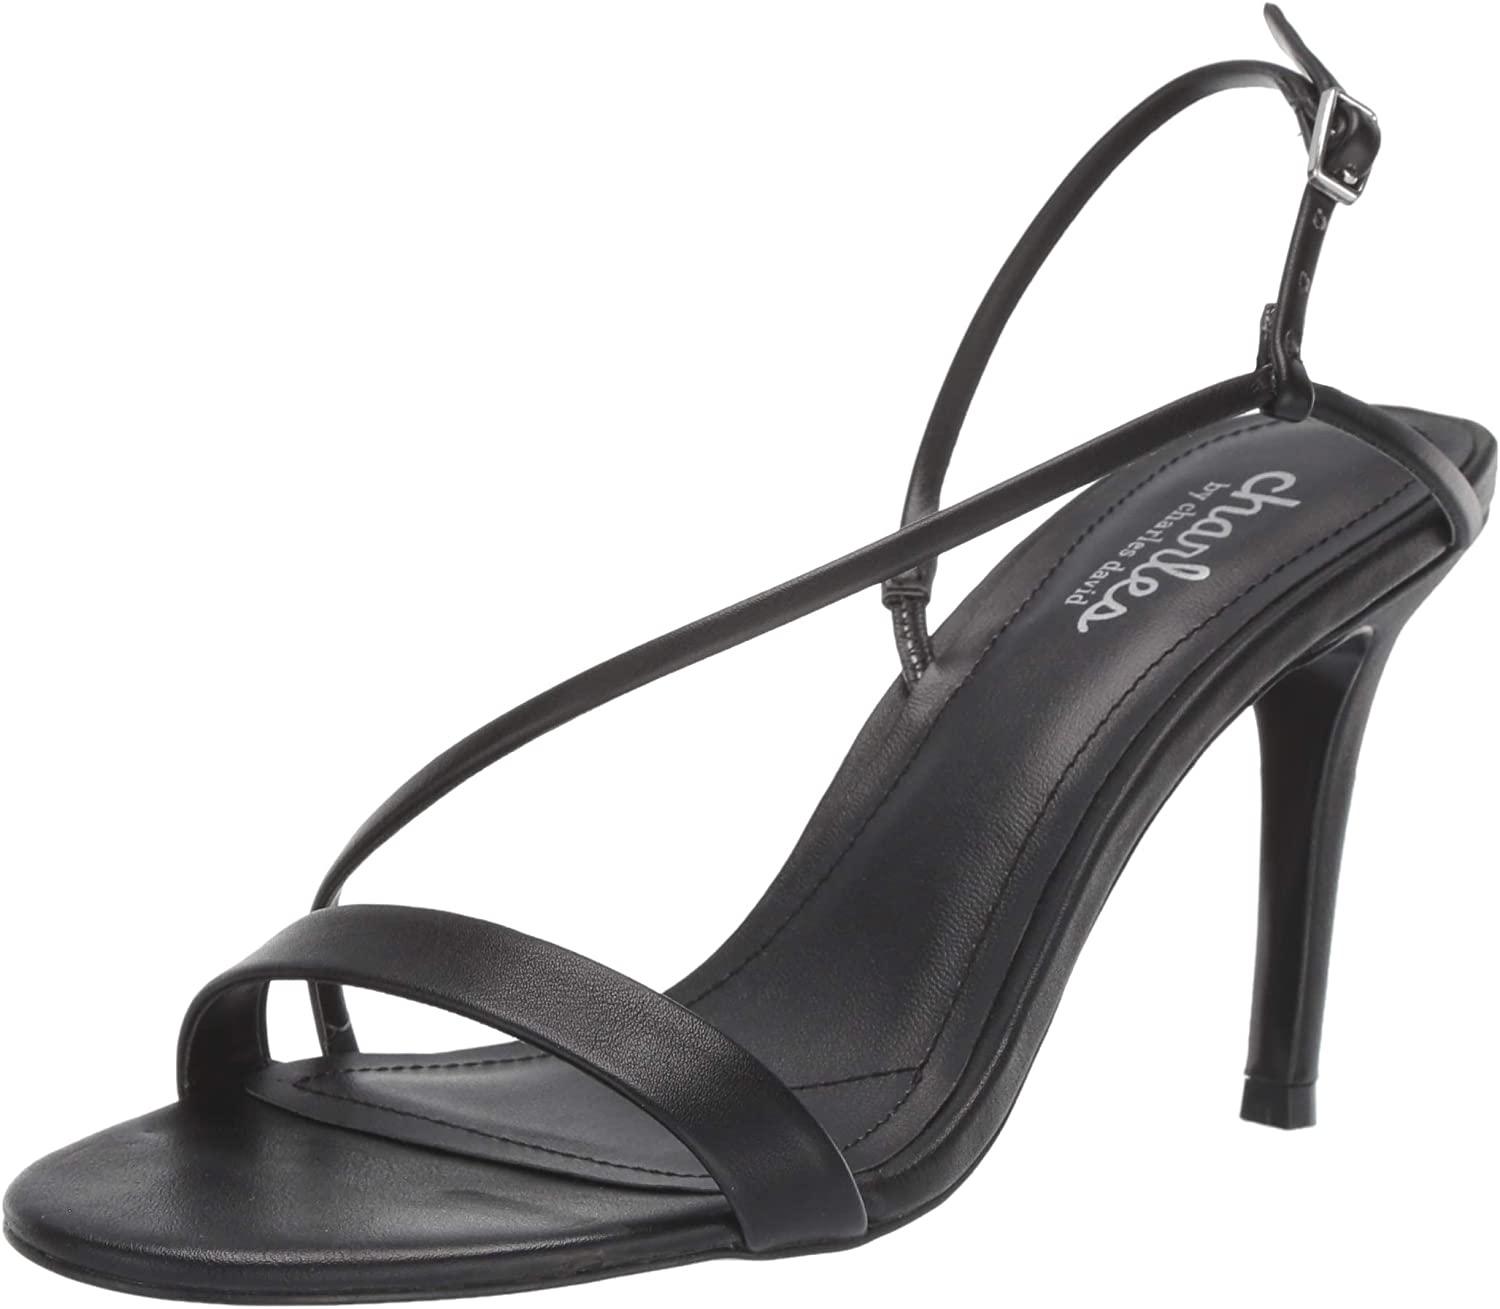 Max 52% OFF Charles by Popular product David Women's Hardy Heeled Sandal